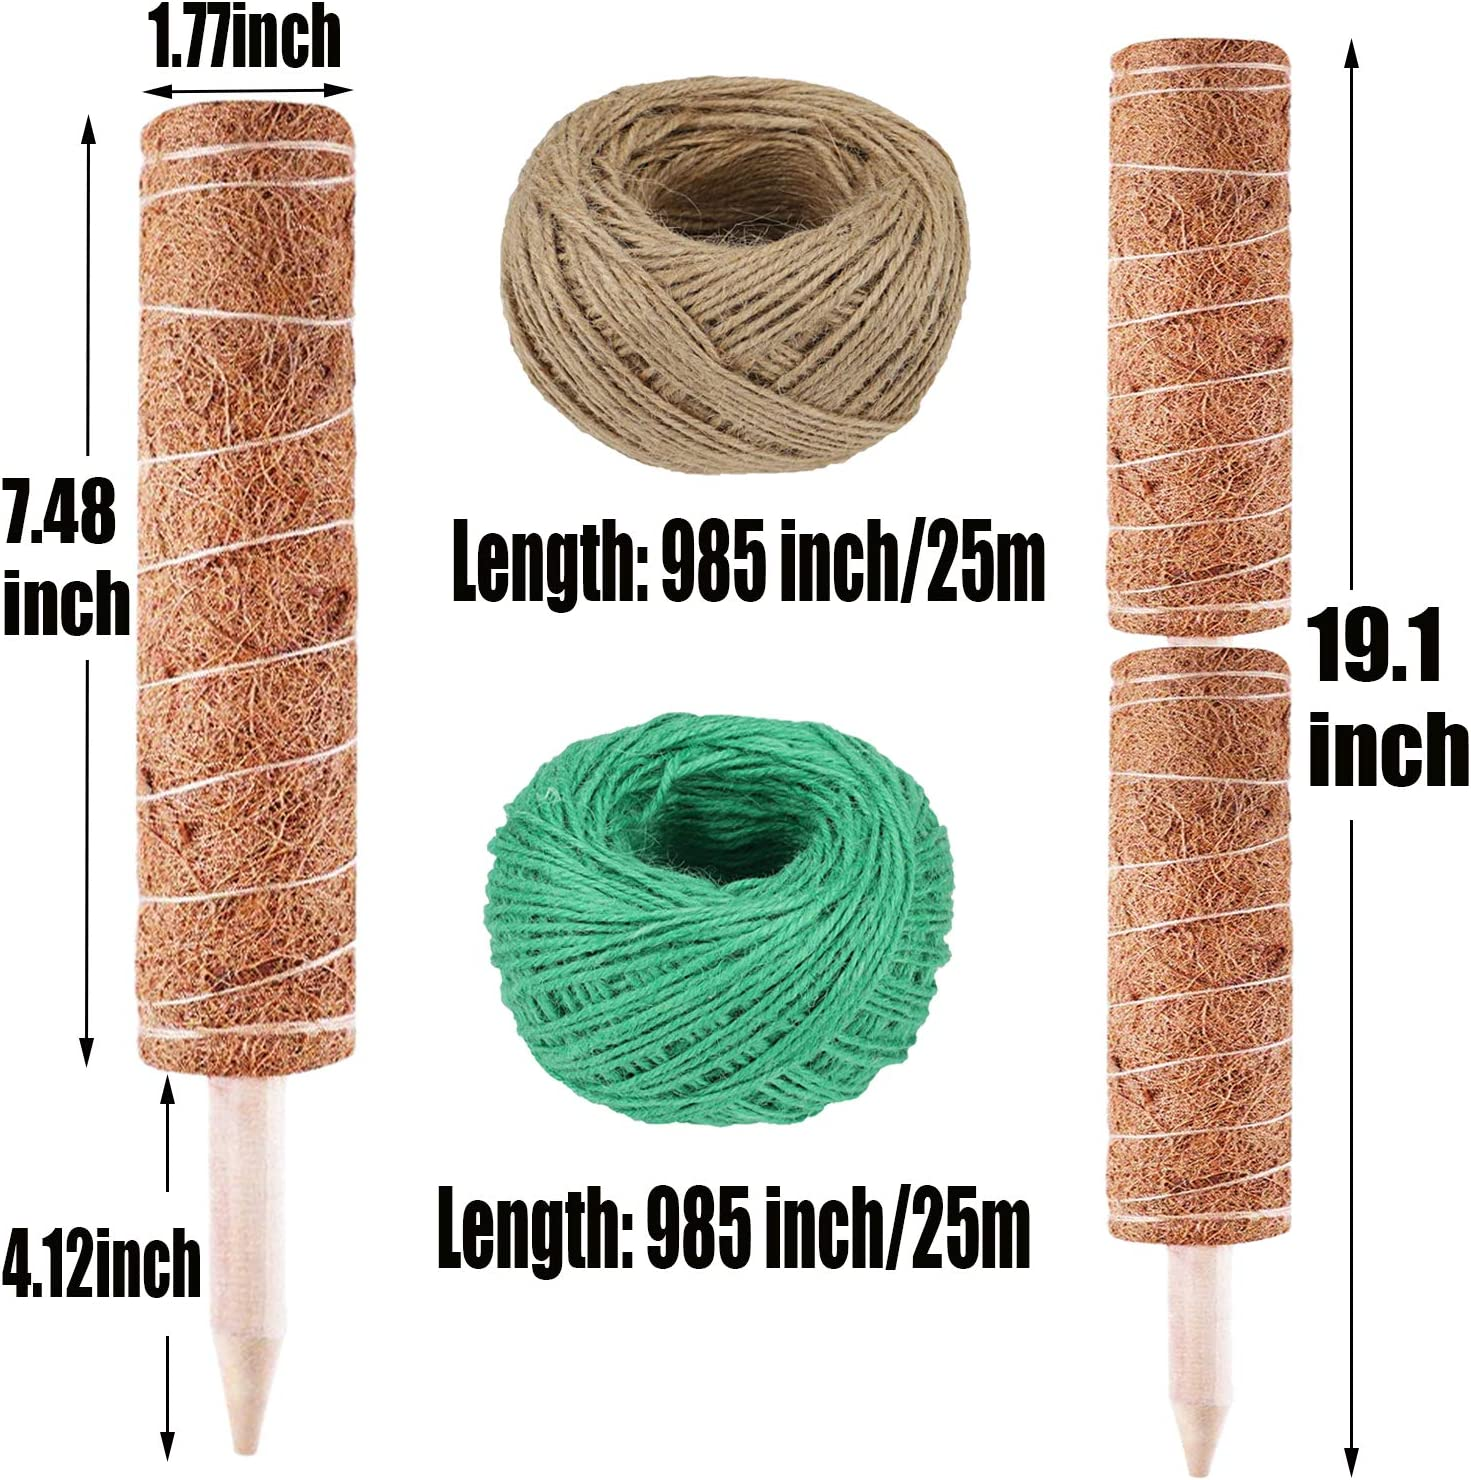 N//F Coir Totem Pole Coir Growing Poles,2 Pcs Plant Support Pole Totem Pole with 2 Pcs 984 Inches Garden Twine for Plant Support Extension Climbing Plants Creepers to Grow Upwards